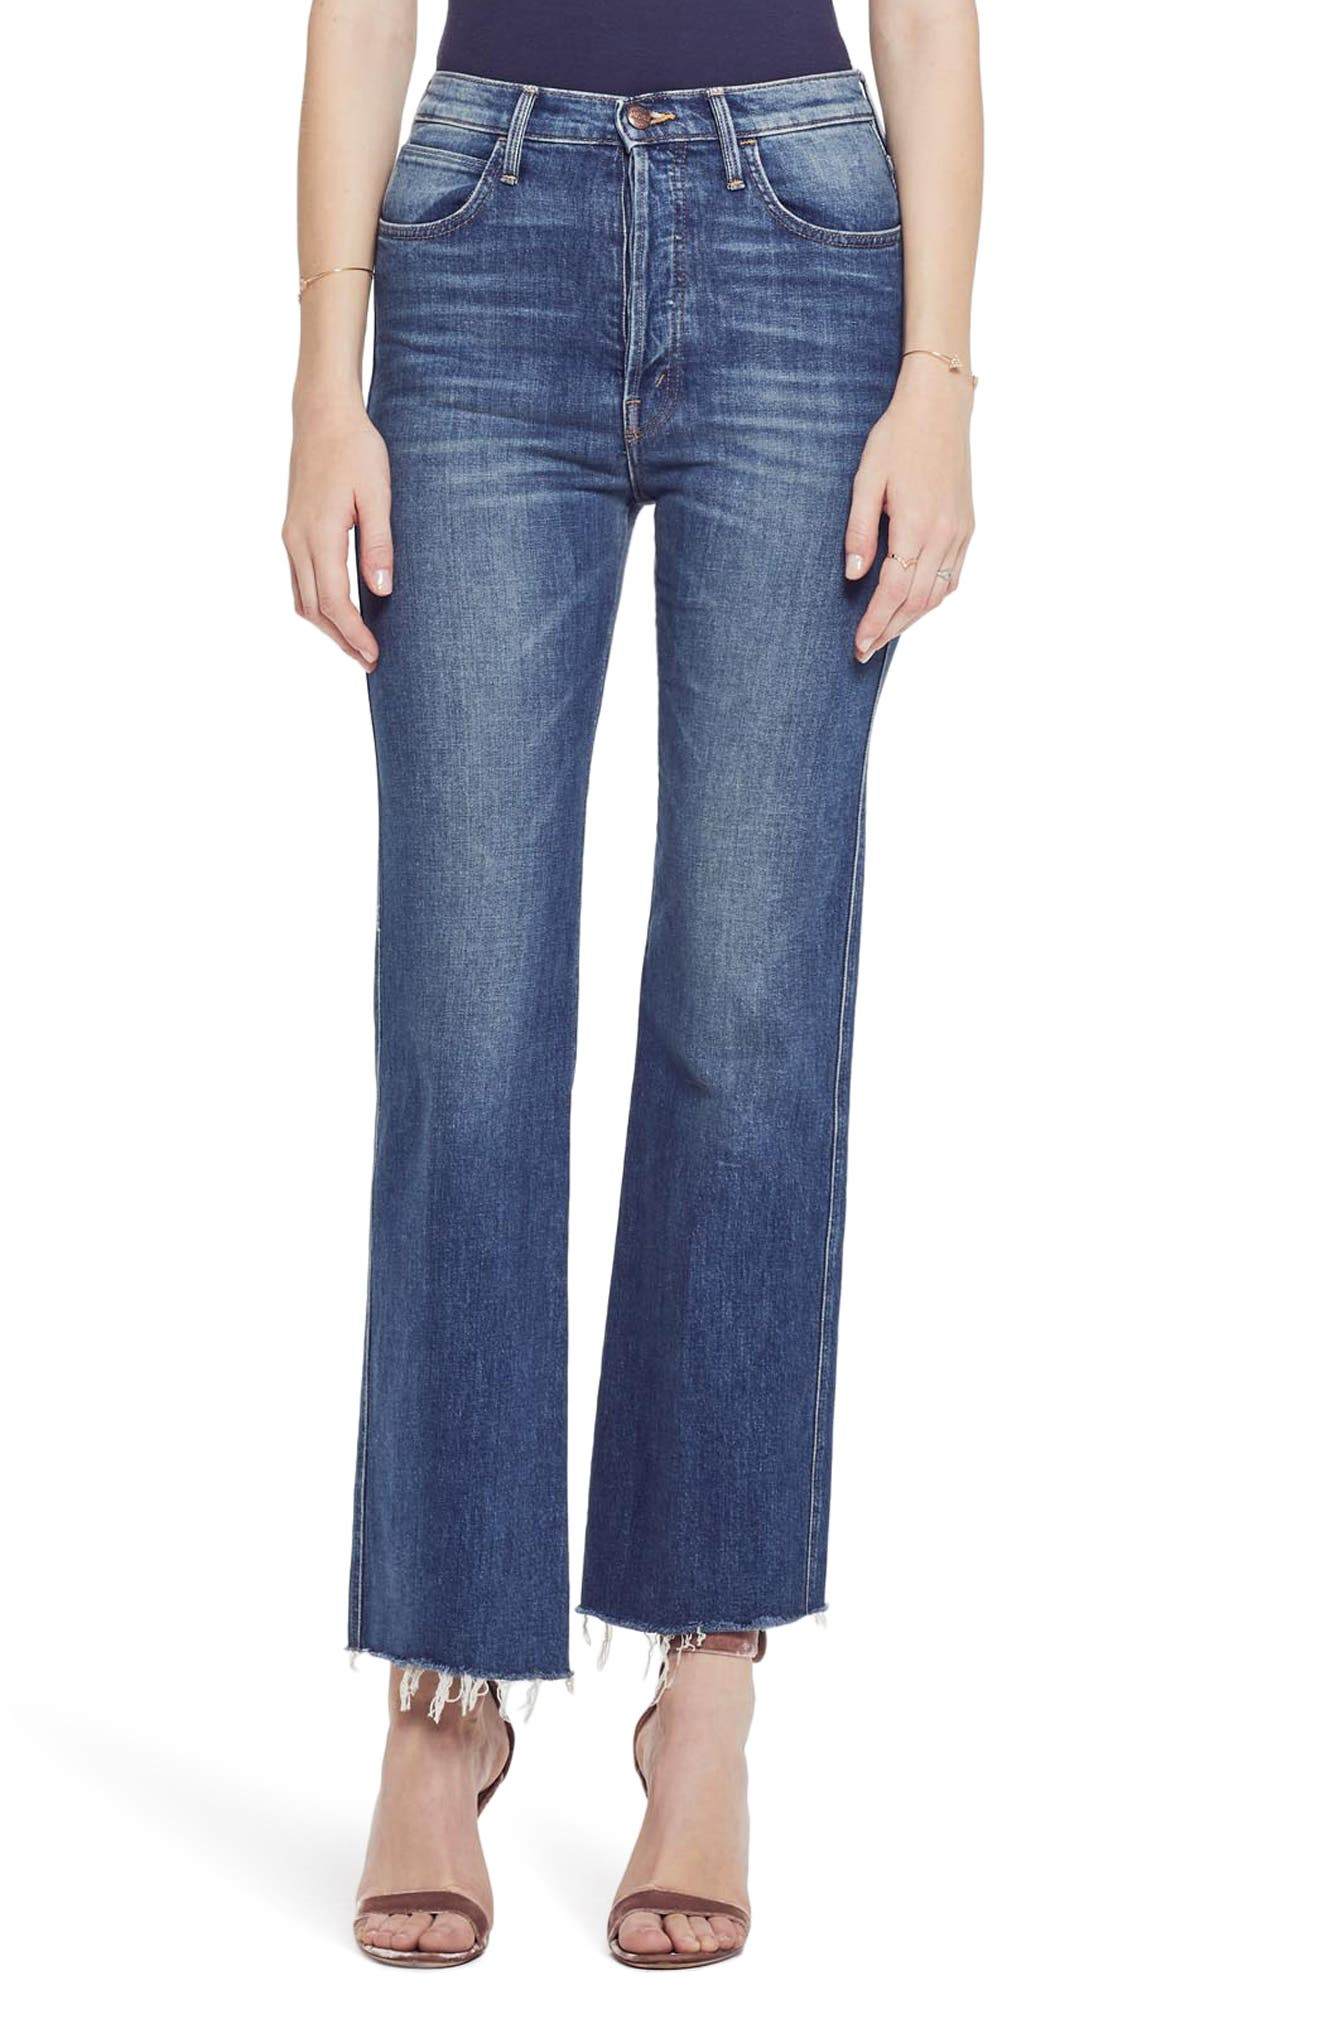 MOTHER, The Tripper Super High Waist Frayed Bootcut Jeans, Main thumbnail 1, color, JUST ONE SIP